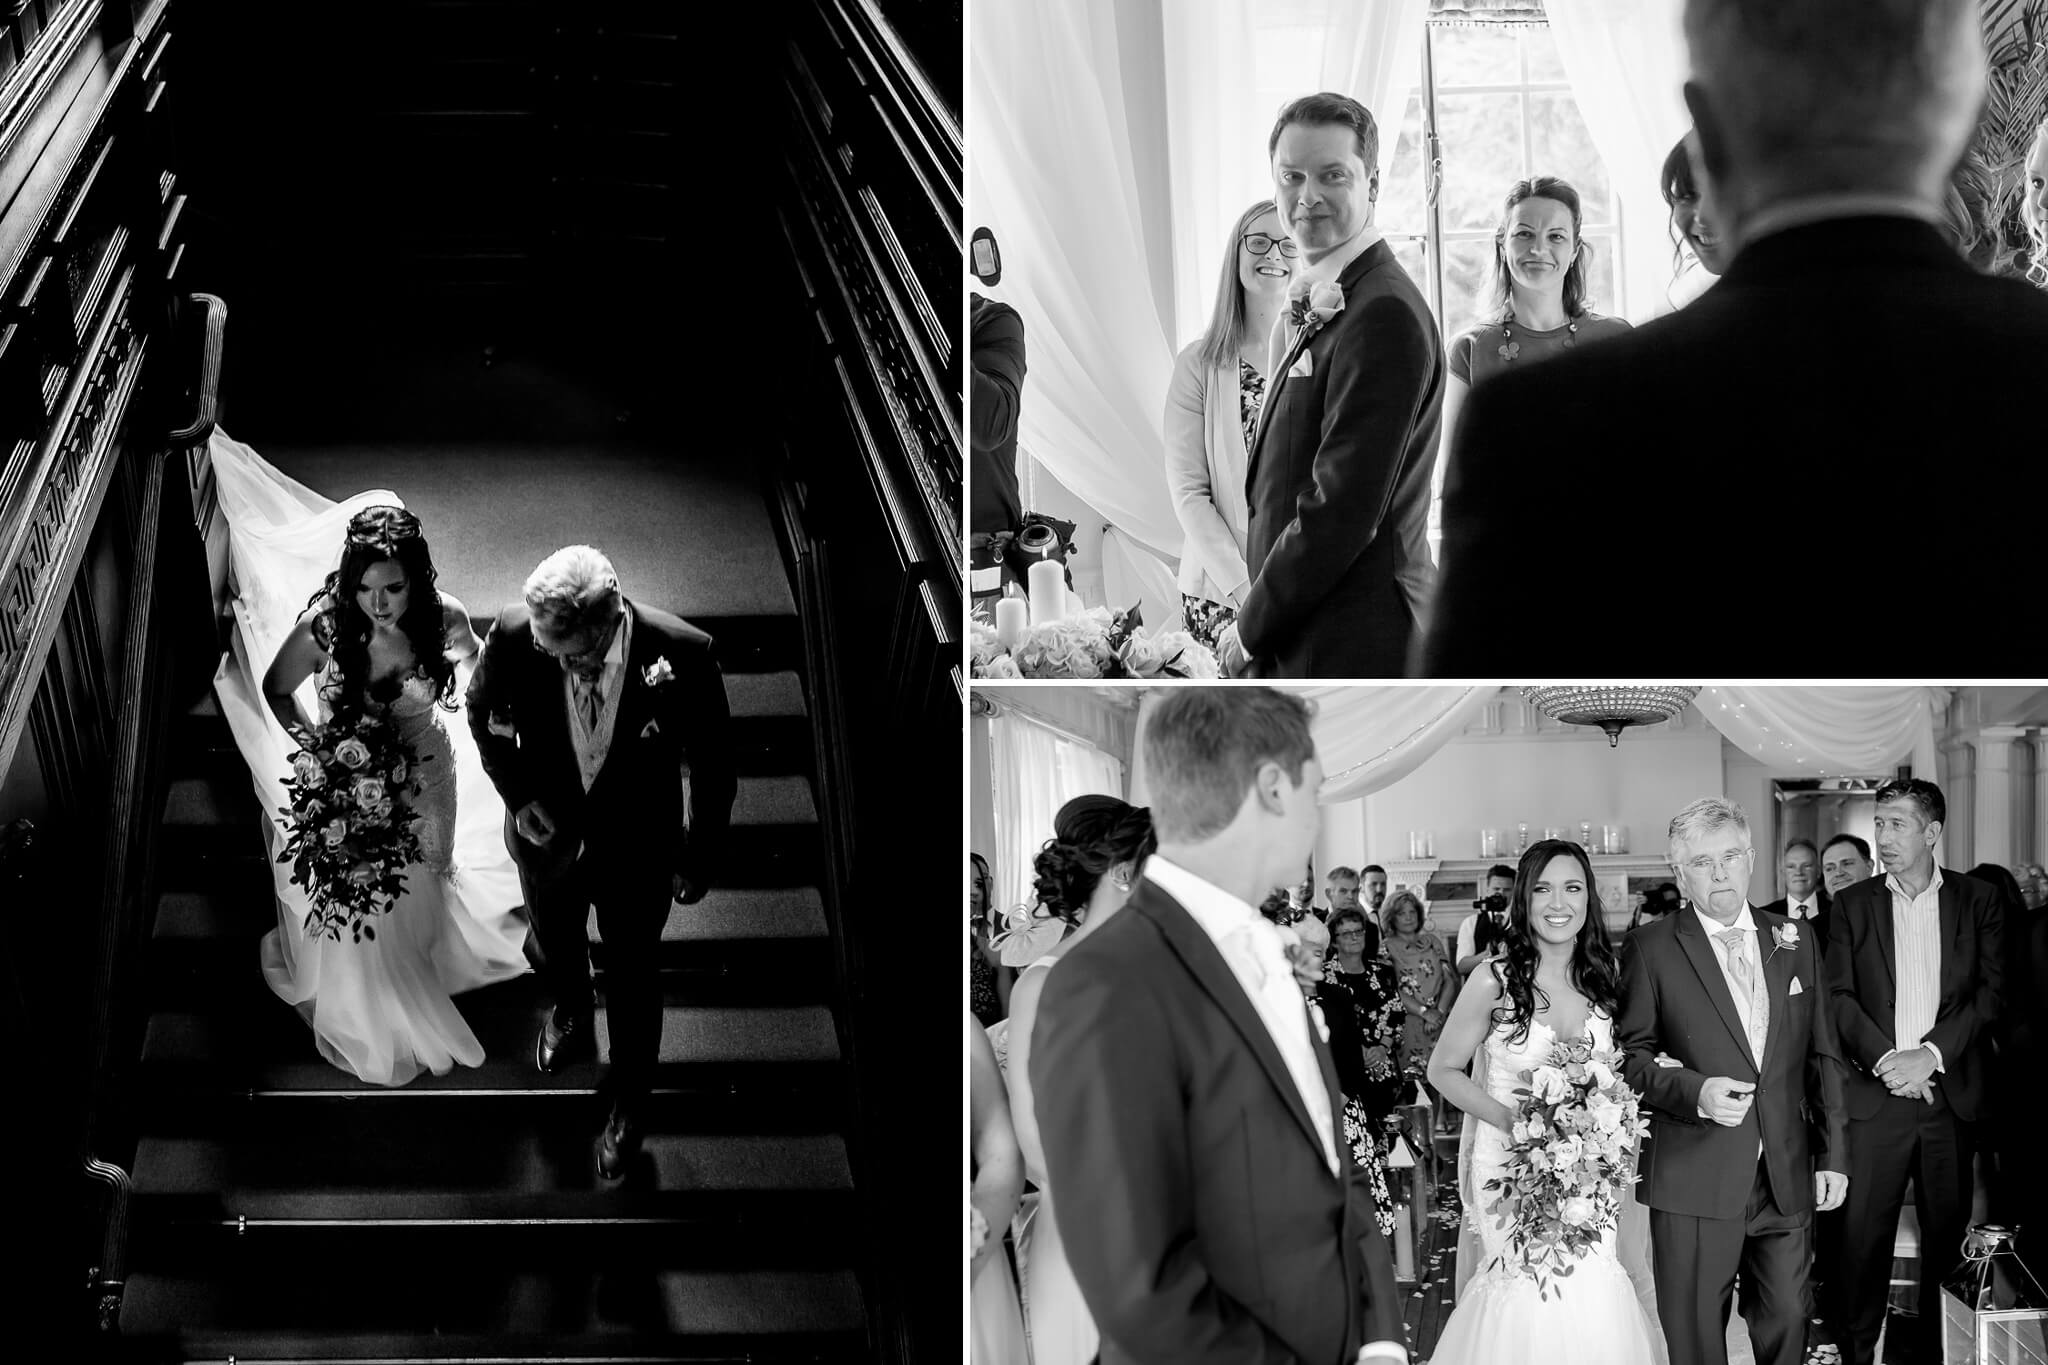 eaves-hall-wedding-photographer-stanbury-photography-010